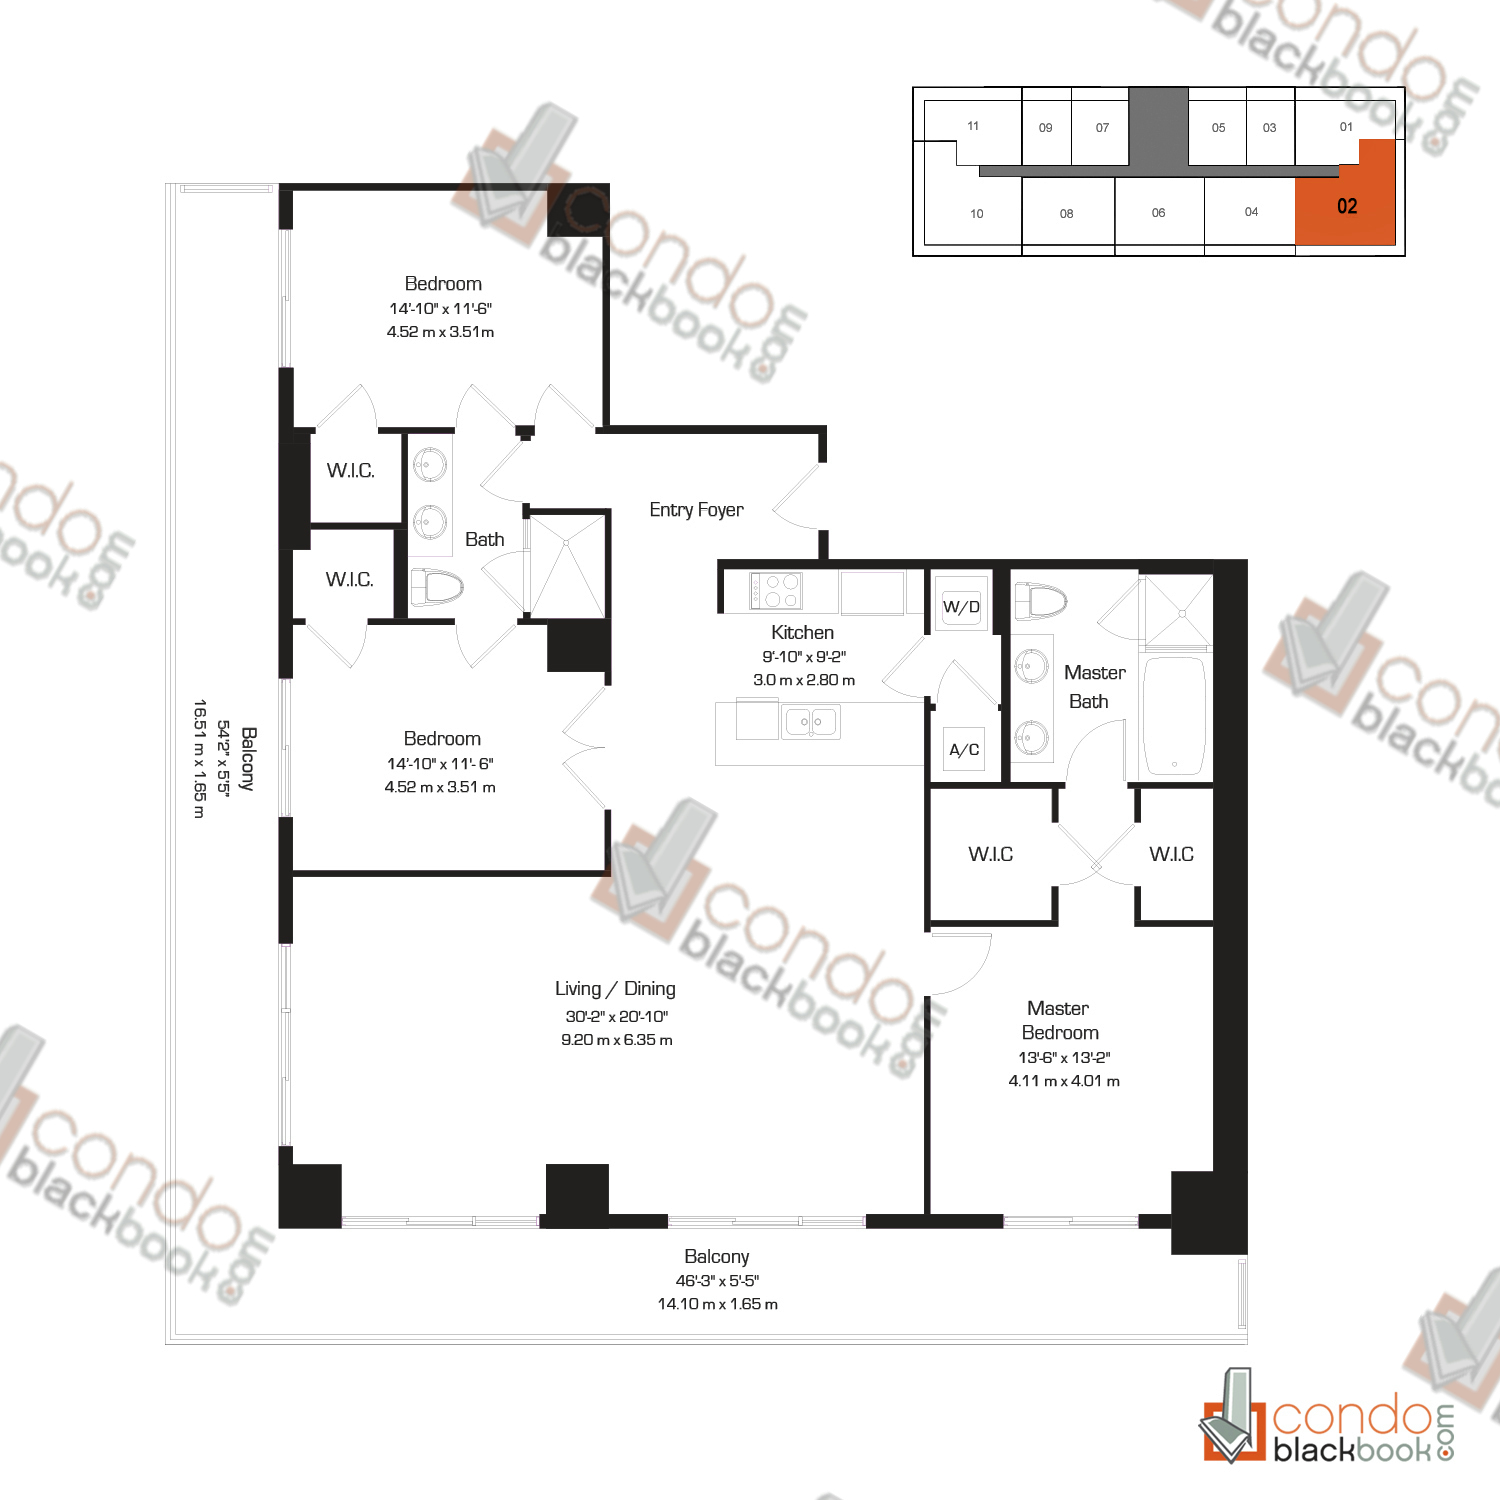 Floor plan for 50 Biscayne Downtown Miami Miami, model K, line 02, 3/2 bedrooms, 1,789 sq ft